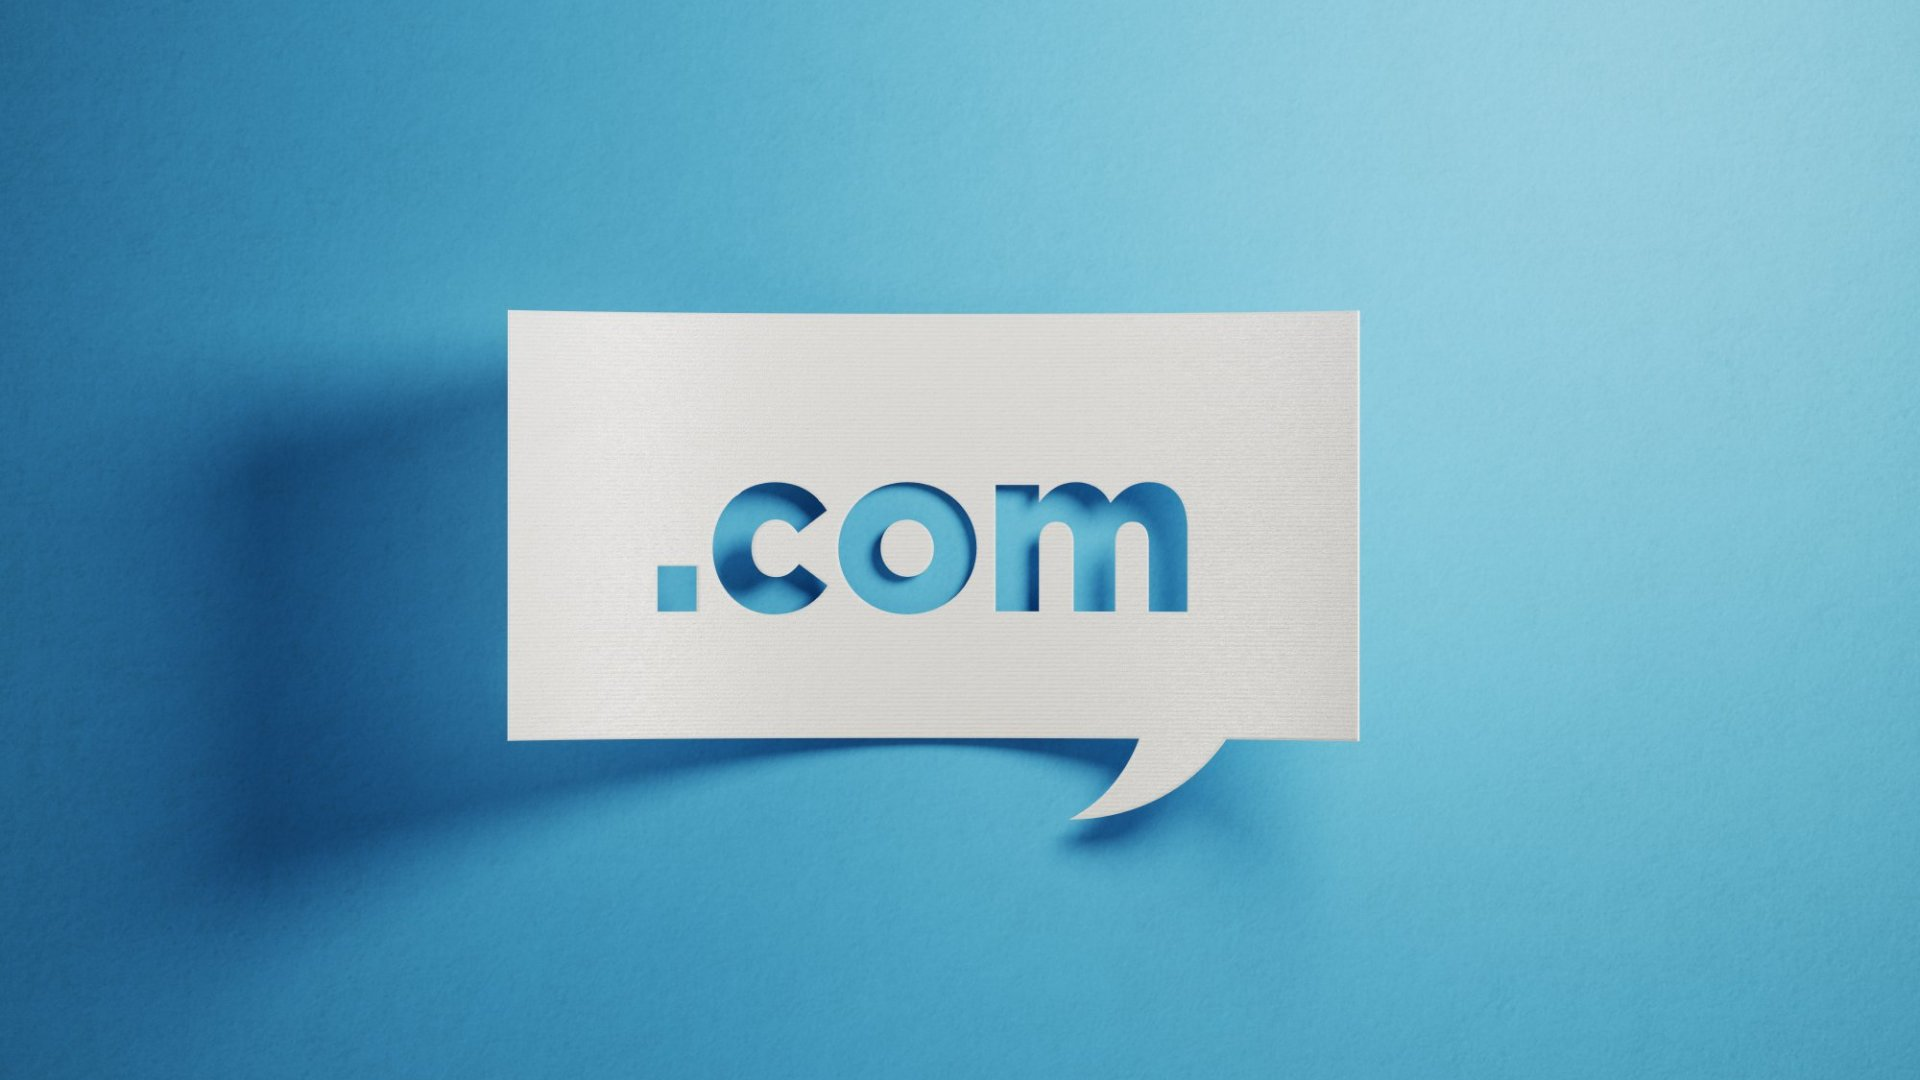 Top-level domains are replacing .com classification and giving more clarity of the company industry.